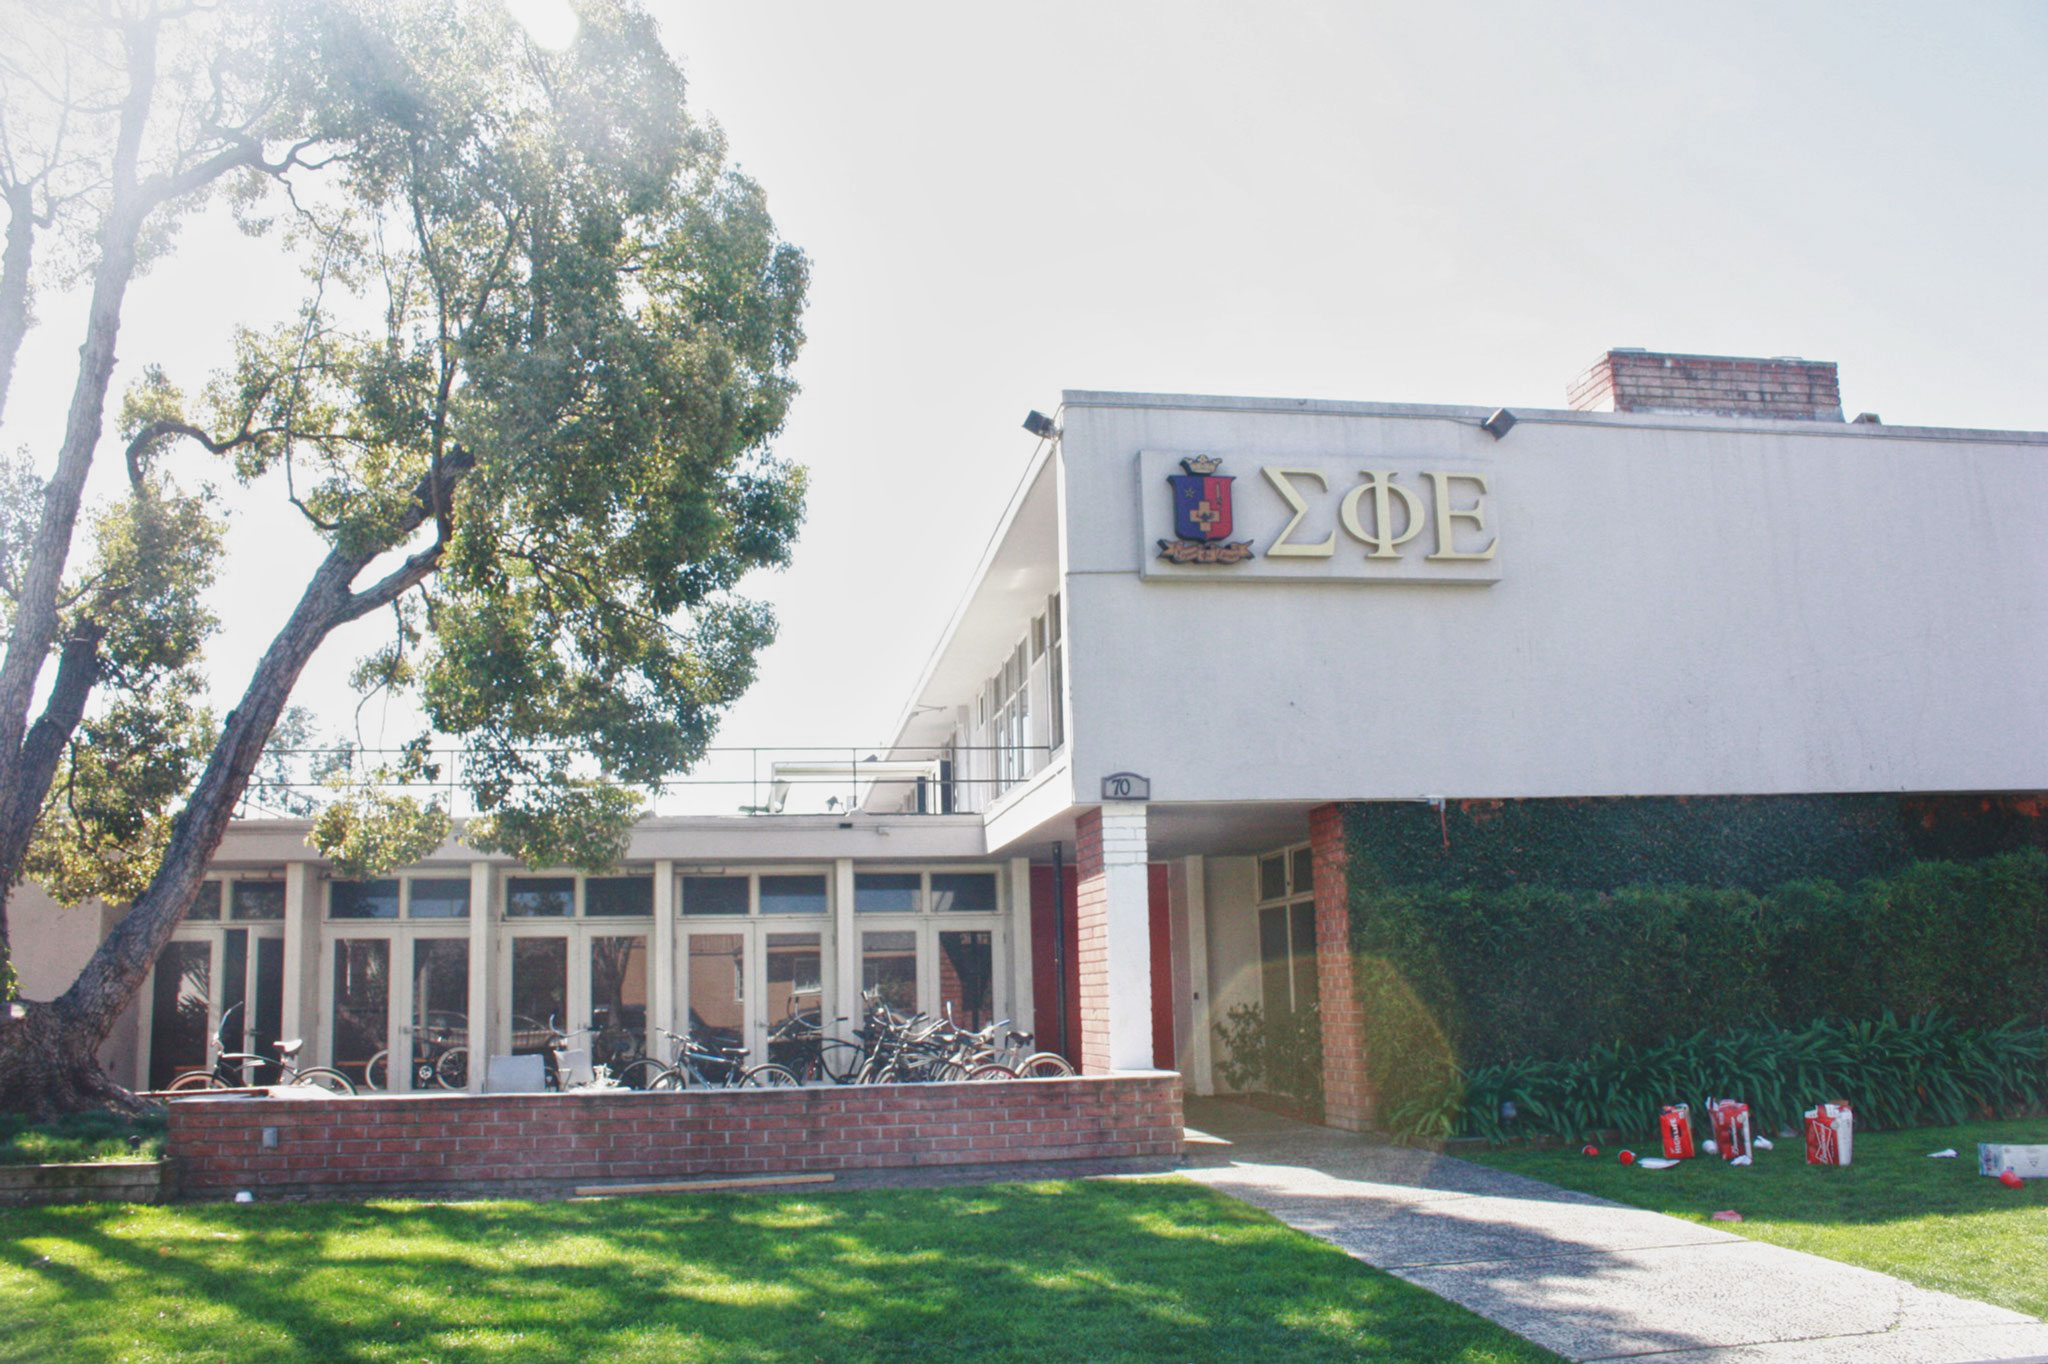 sig ep faces ban for up to five years | daily trojan